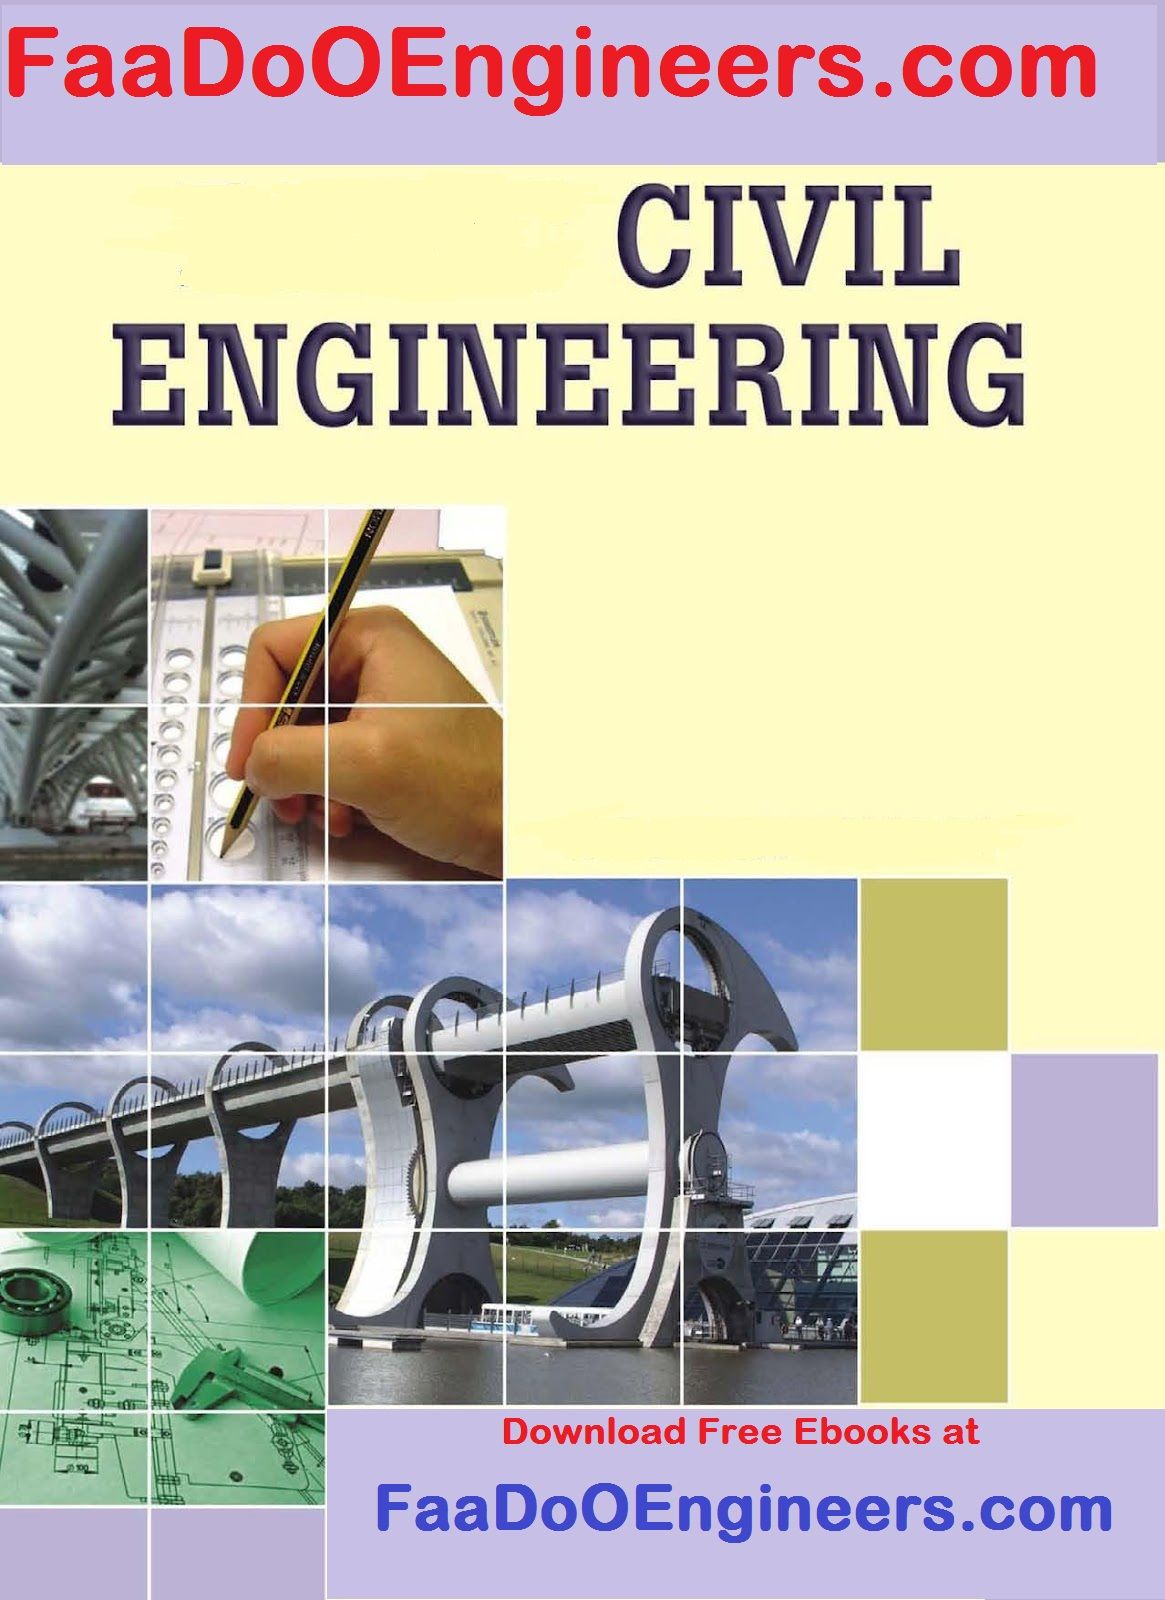 Free download civil engineering ebooks notes faadooengineers free download civil engineering ebooks notes fandeluxe